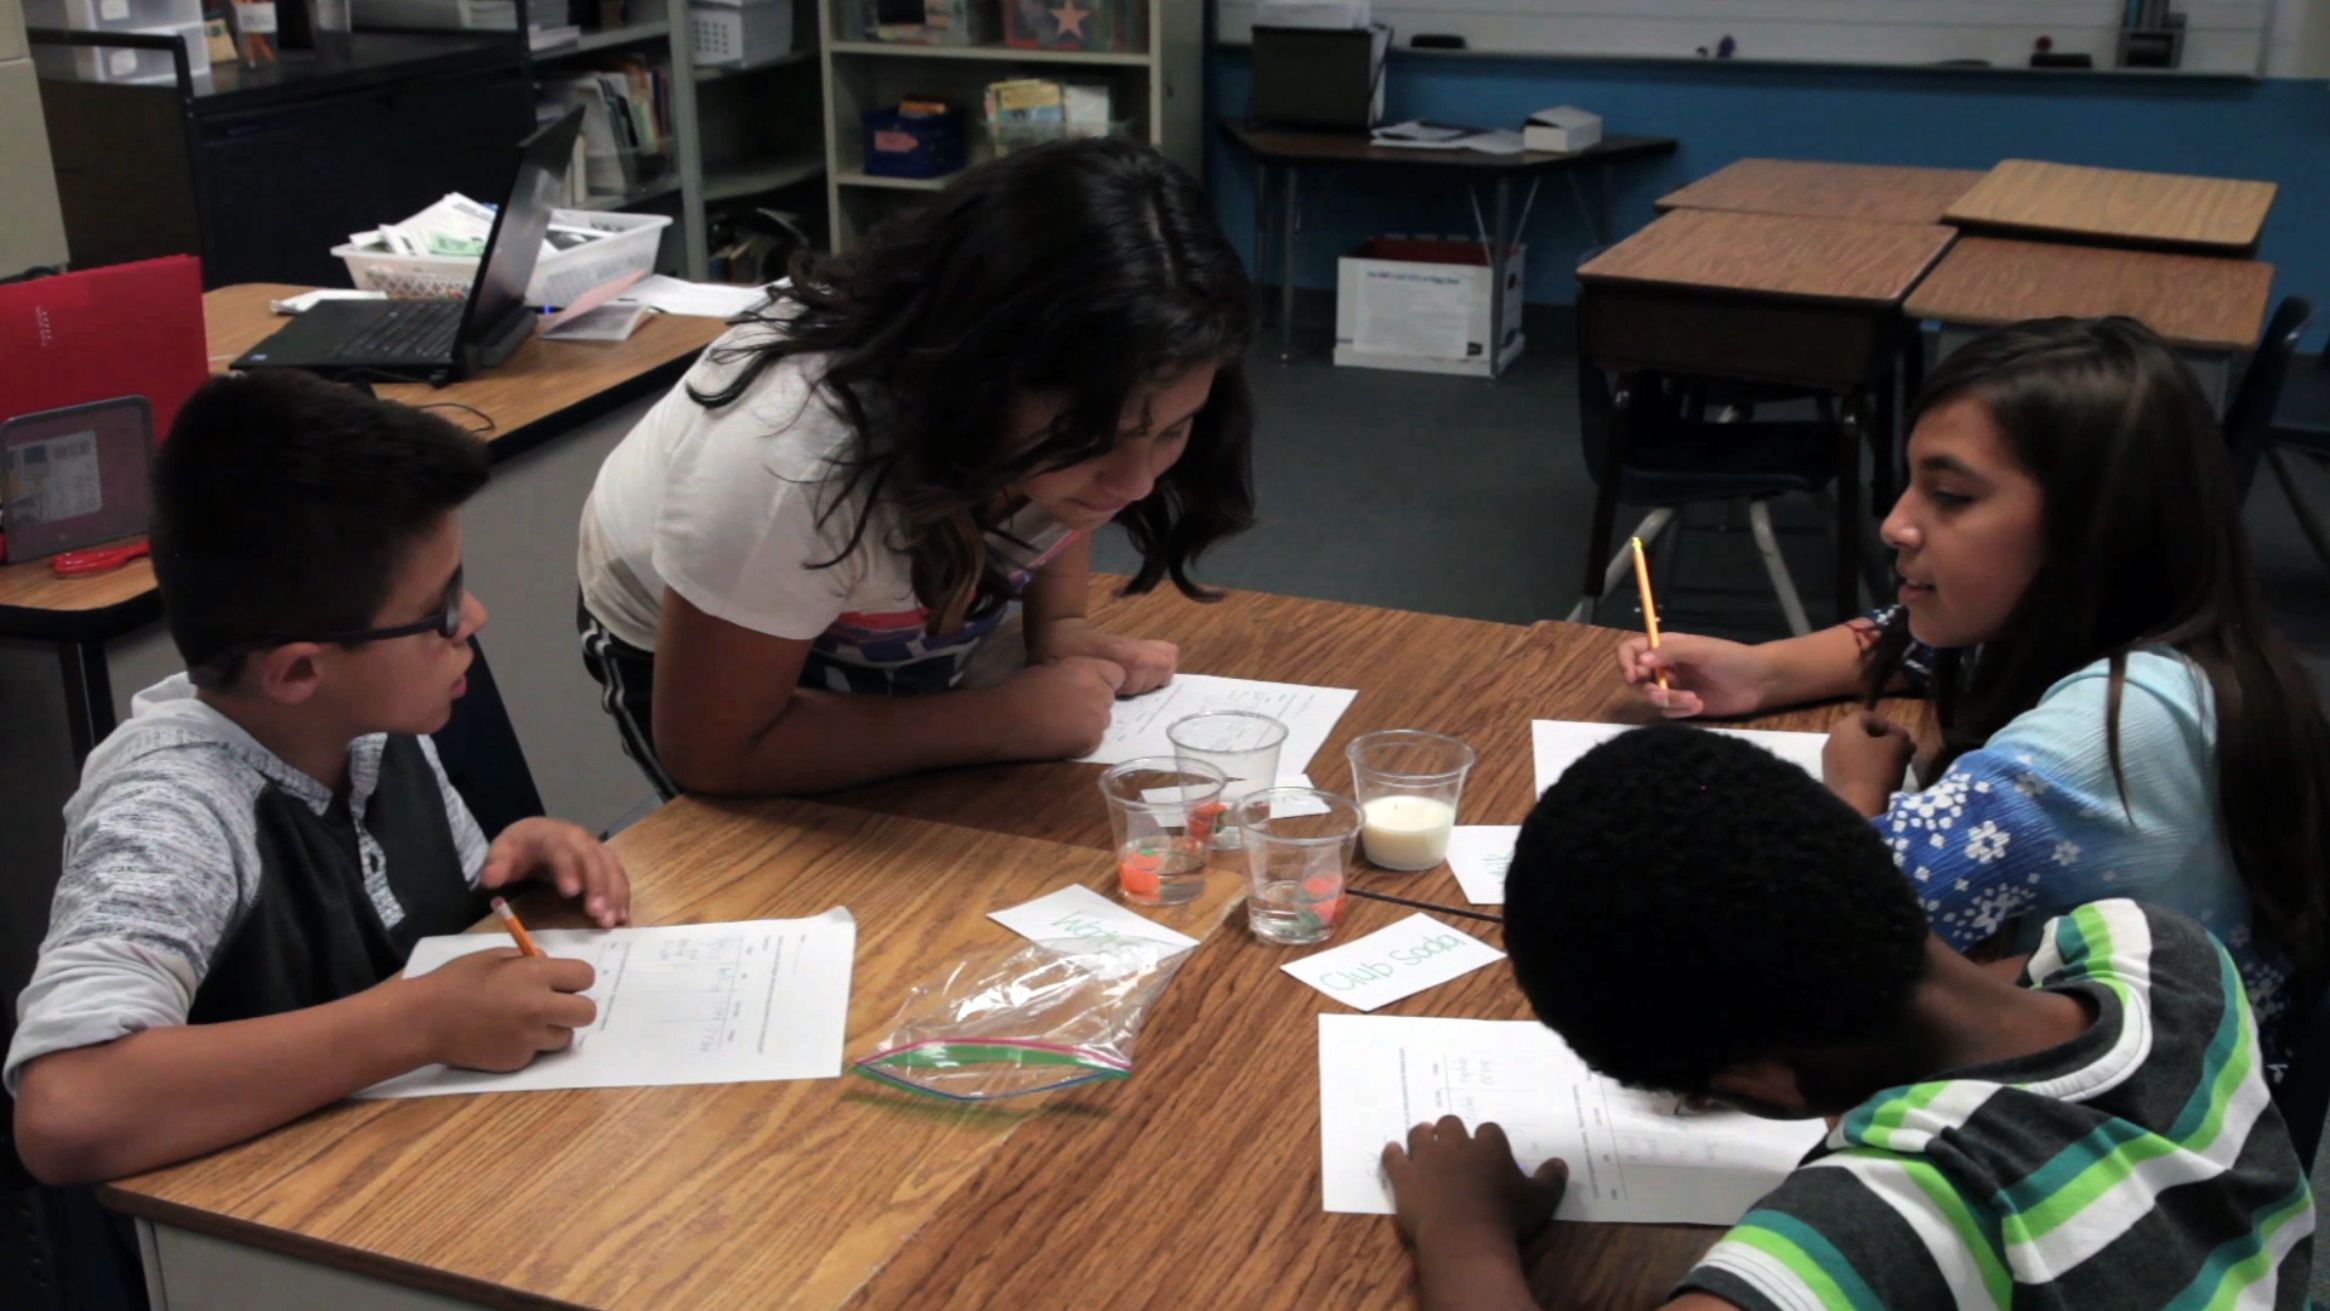 Students are observing on their work in the science class.